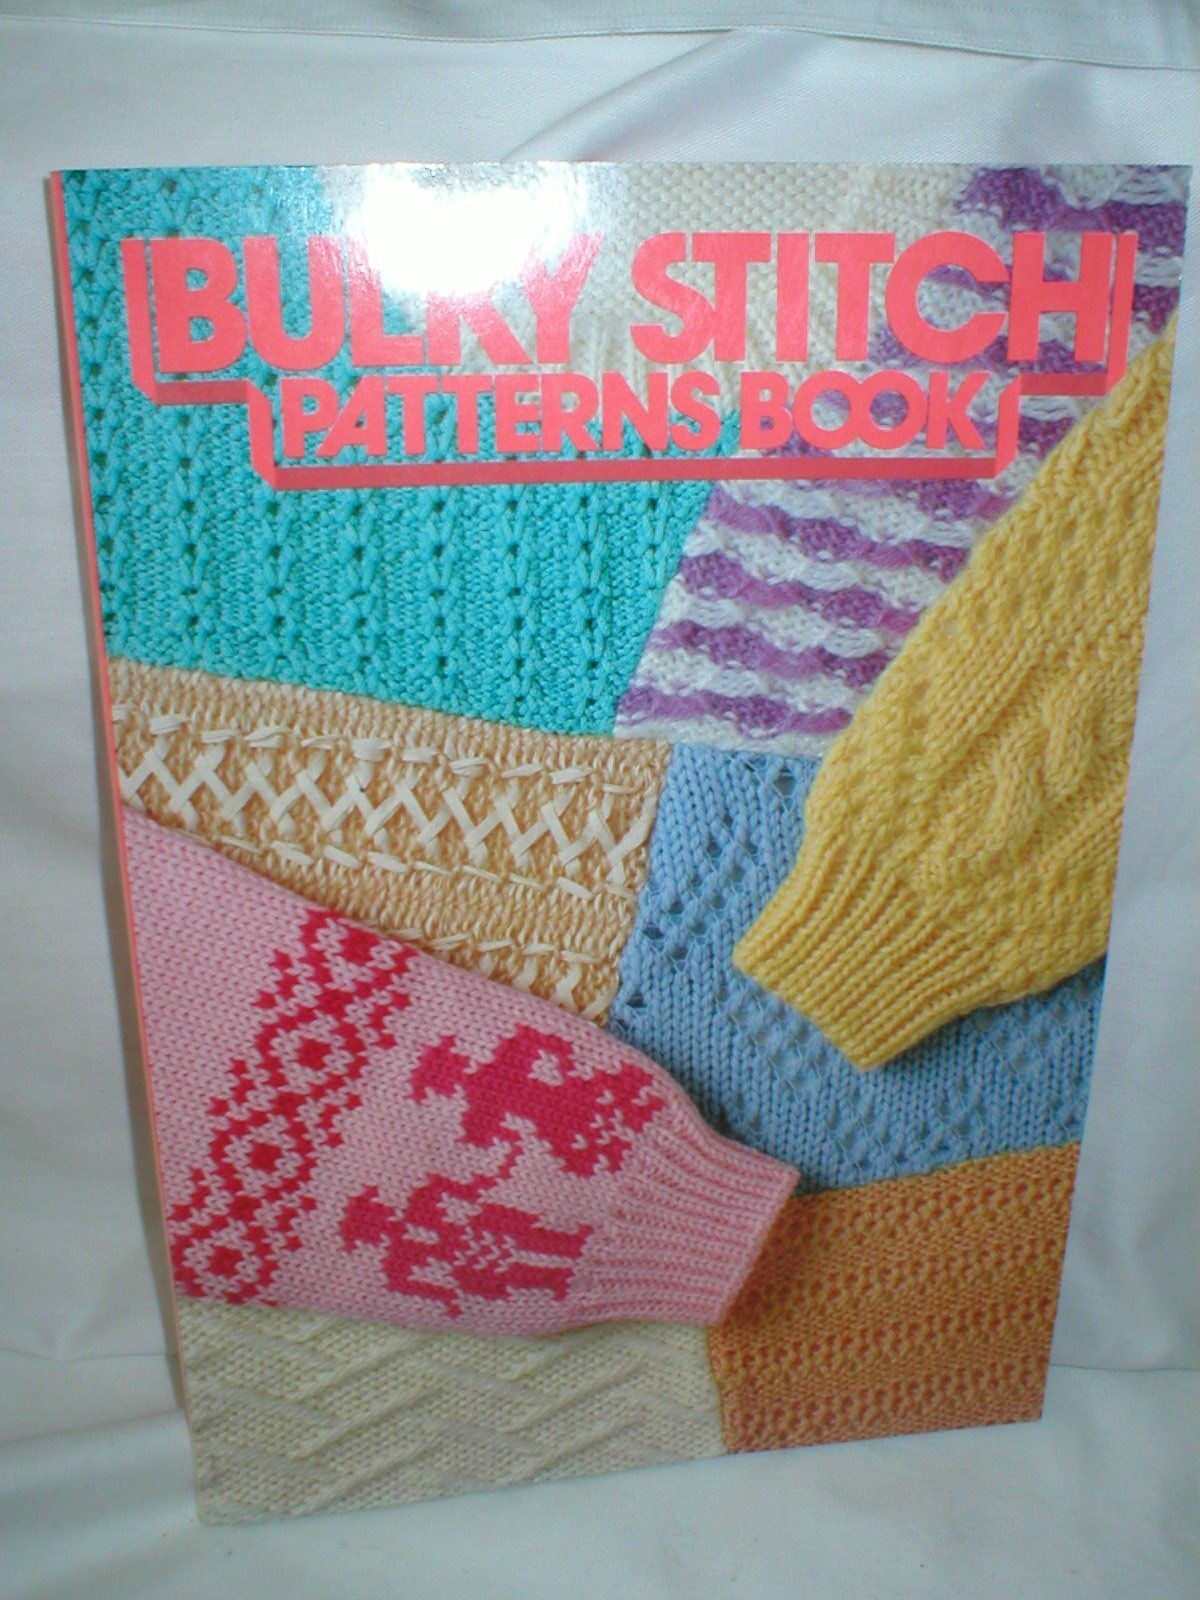 Knitting Equipment Uk : Bulky stitch patterns book for brother chunky knitting